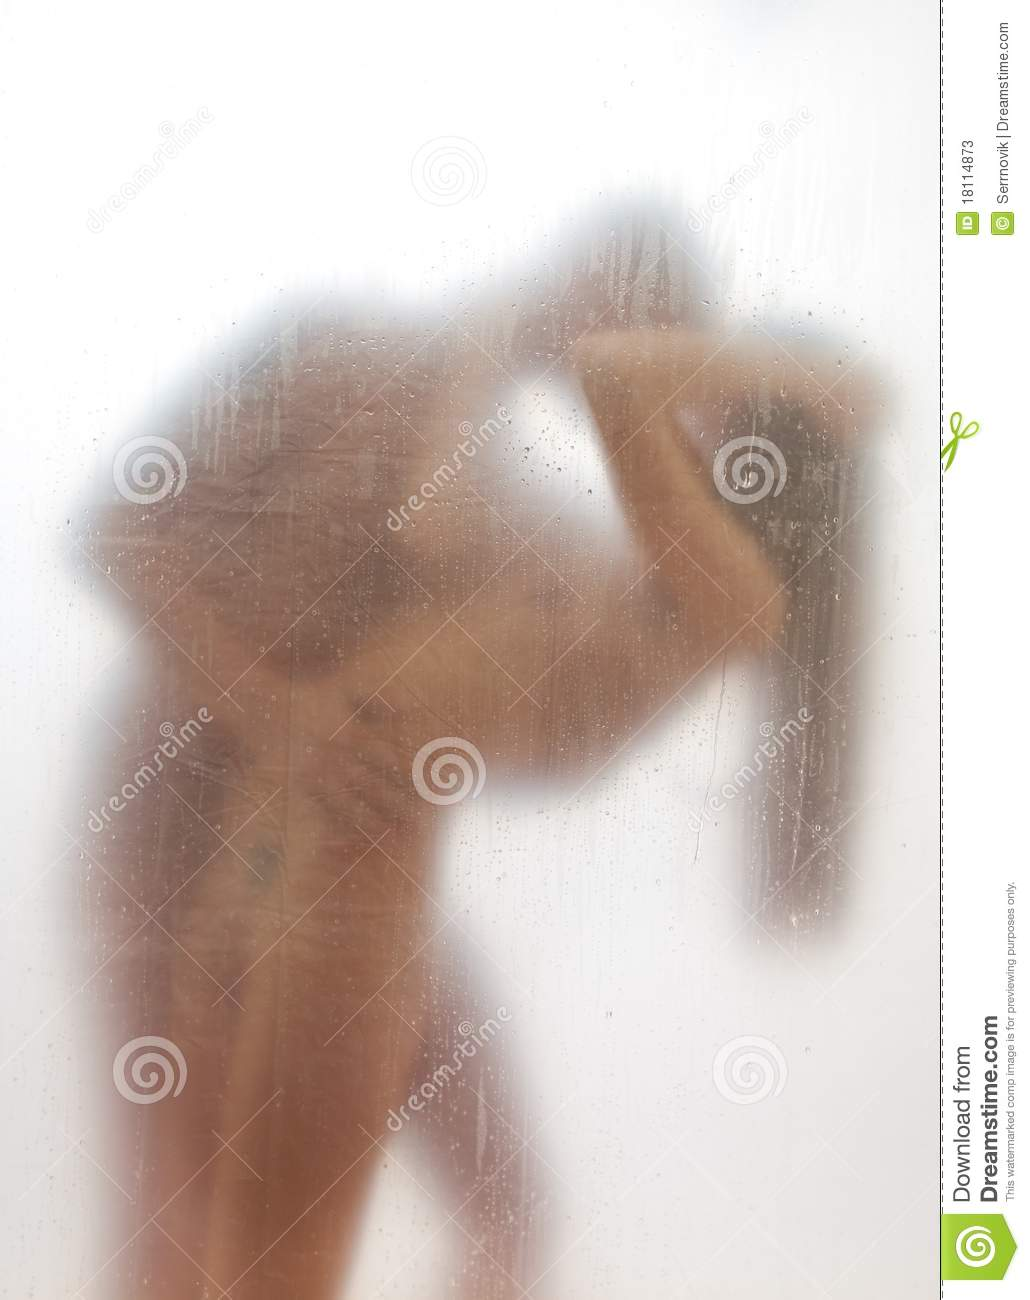 Couple in the shower stock image. Image of hands ...